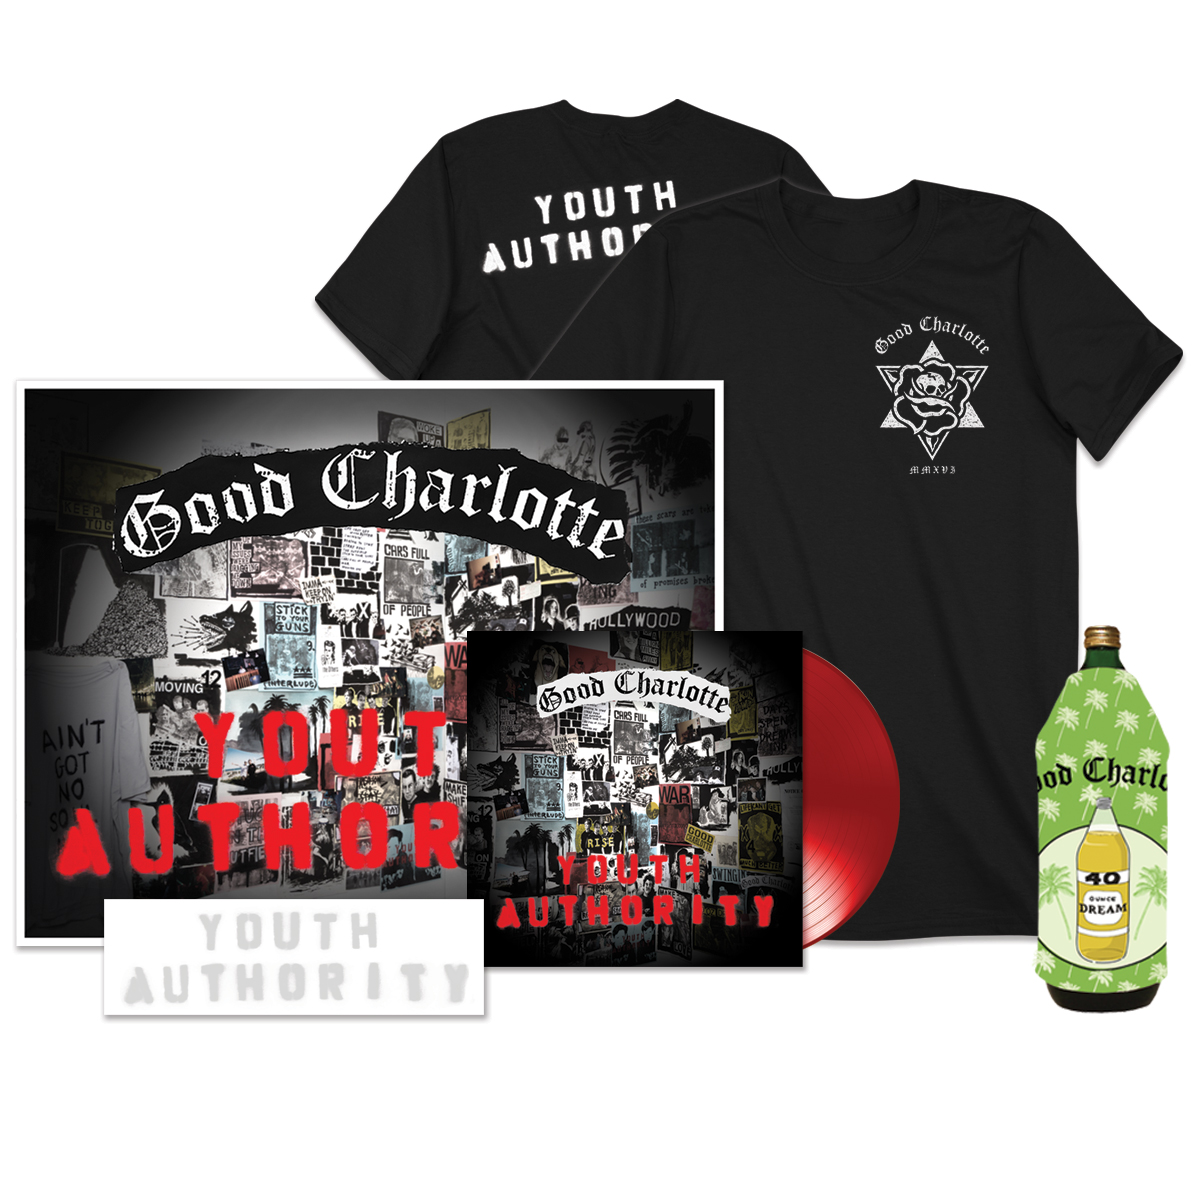 Youth Authority LP + Stencil + Youth Authority MP3 Album + Signed Litho + T-shirt + Koozie